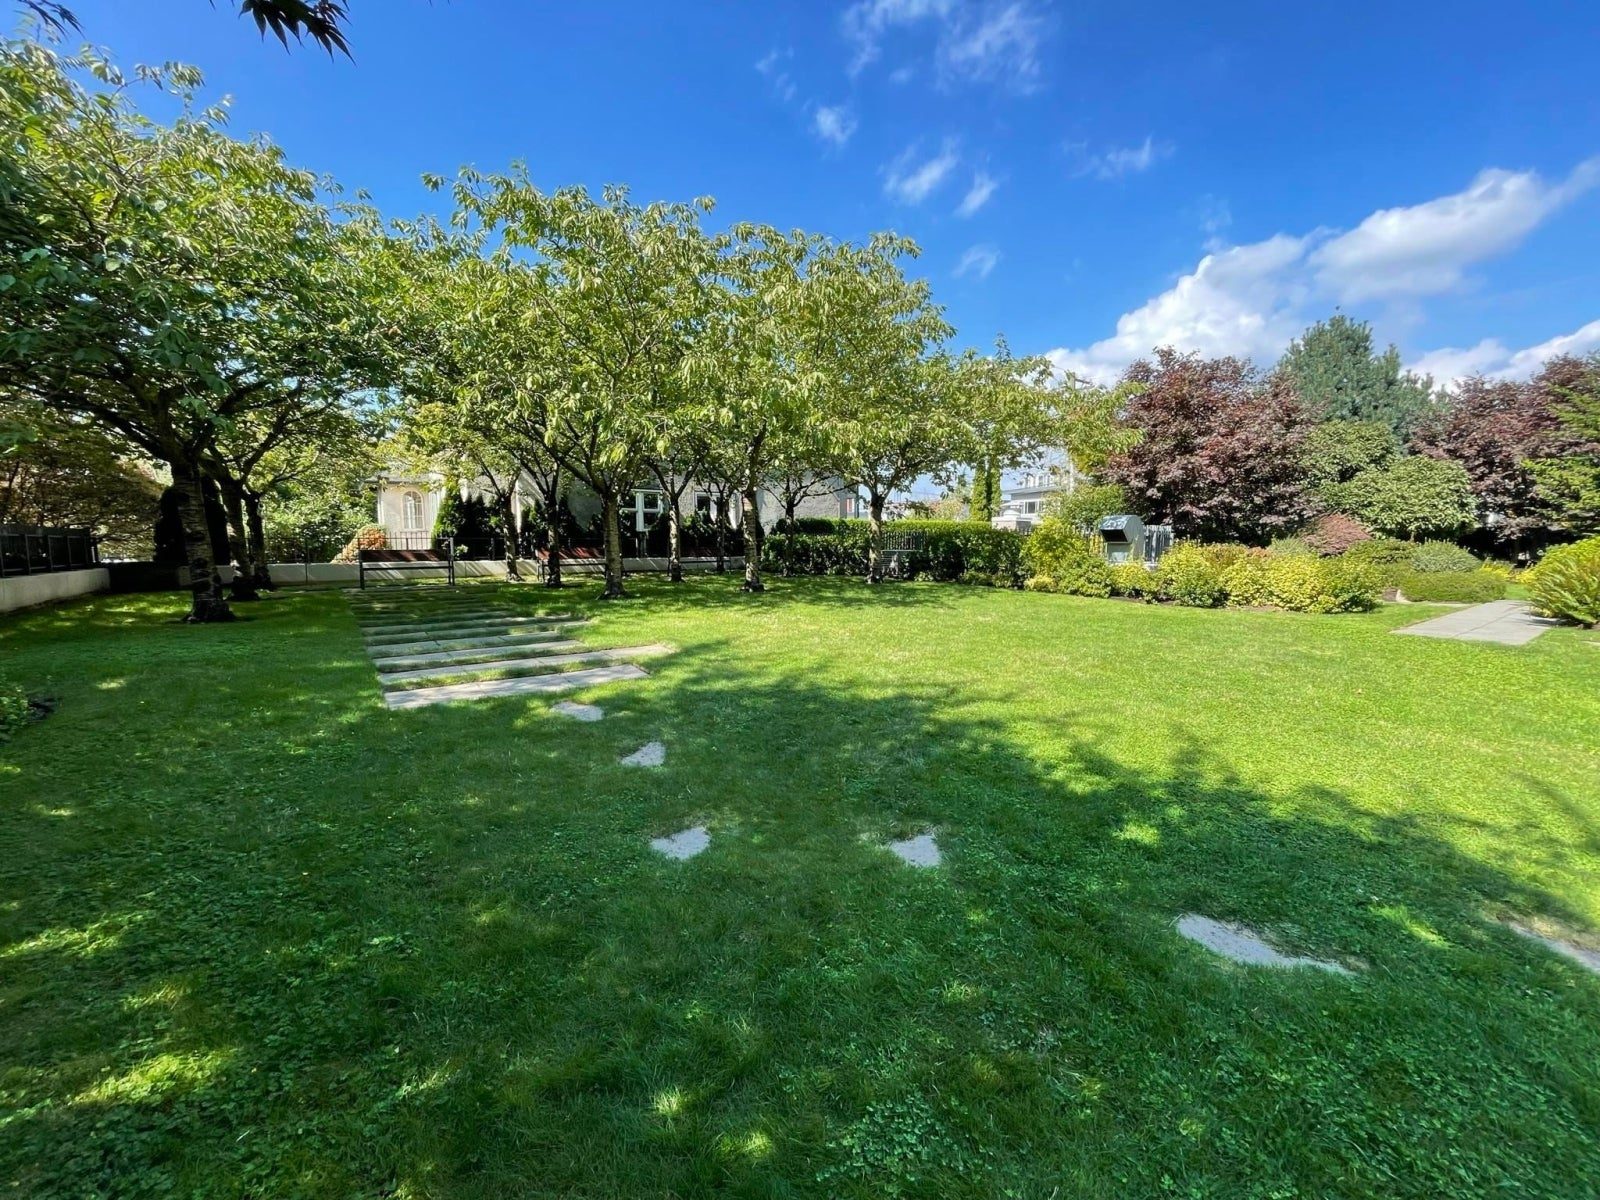 803 1333 W 11TH AVENUE - Fairview VW Apartment/Condo for sale, 2 Bedrooms (R2616288) #38